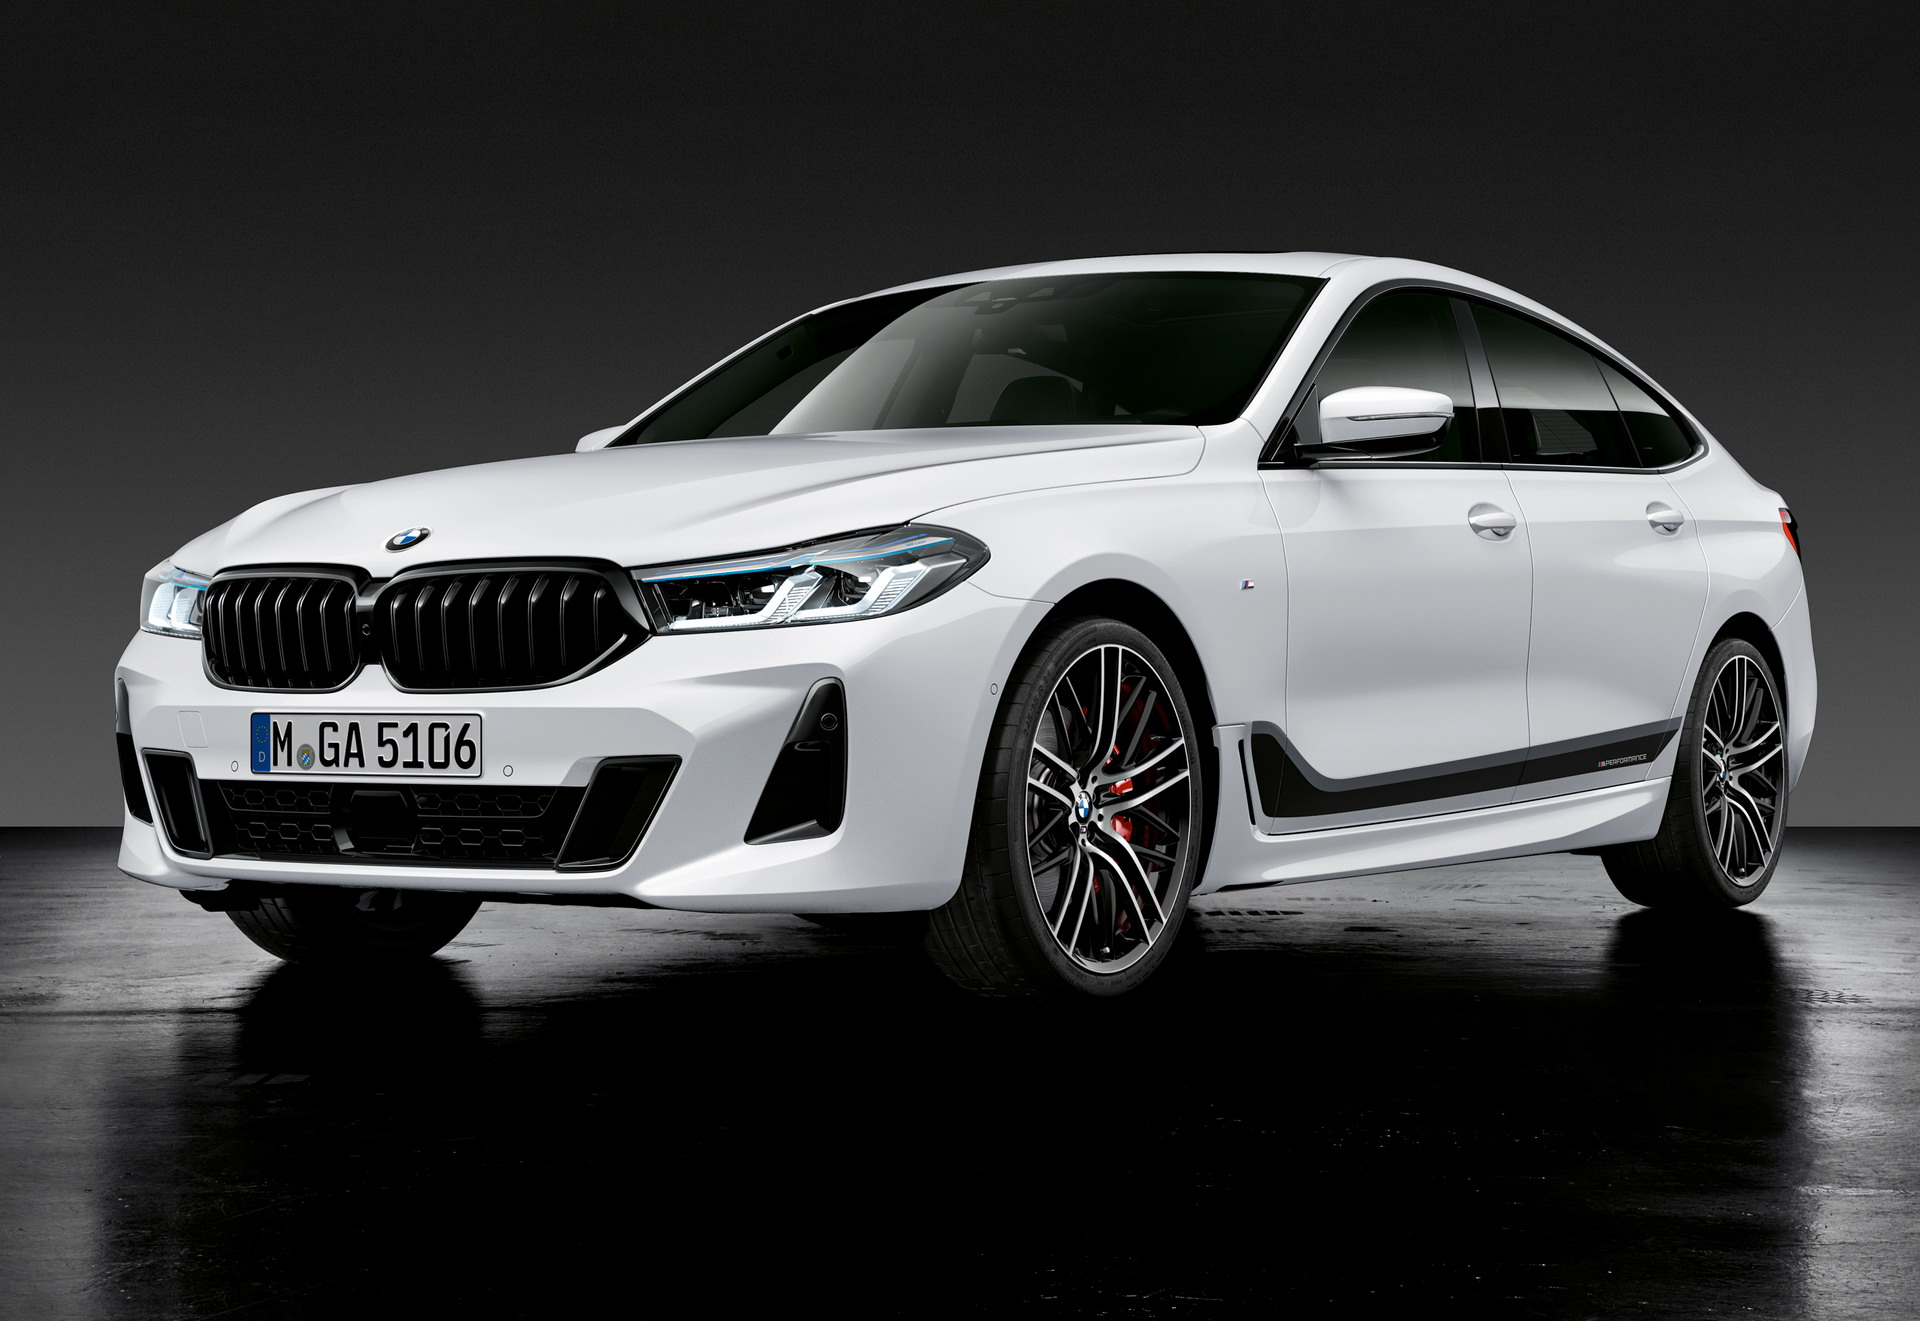 The New BMW 6 Series GT G32 LCI M Performance Parts 1